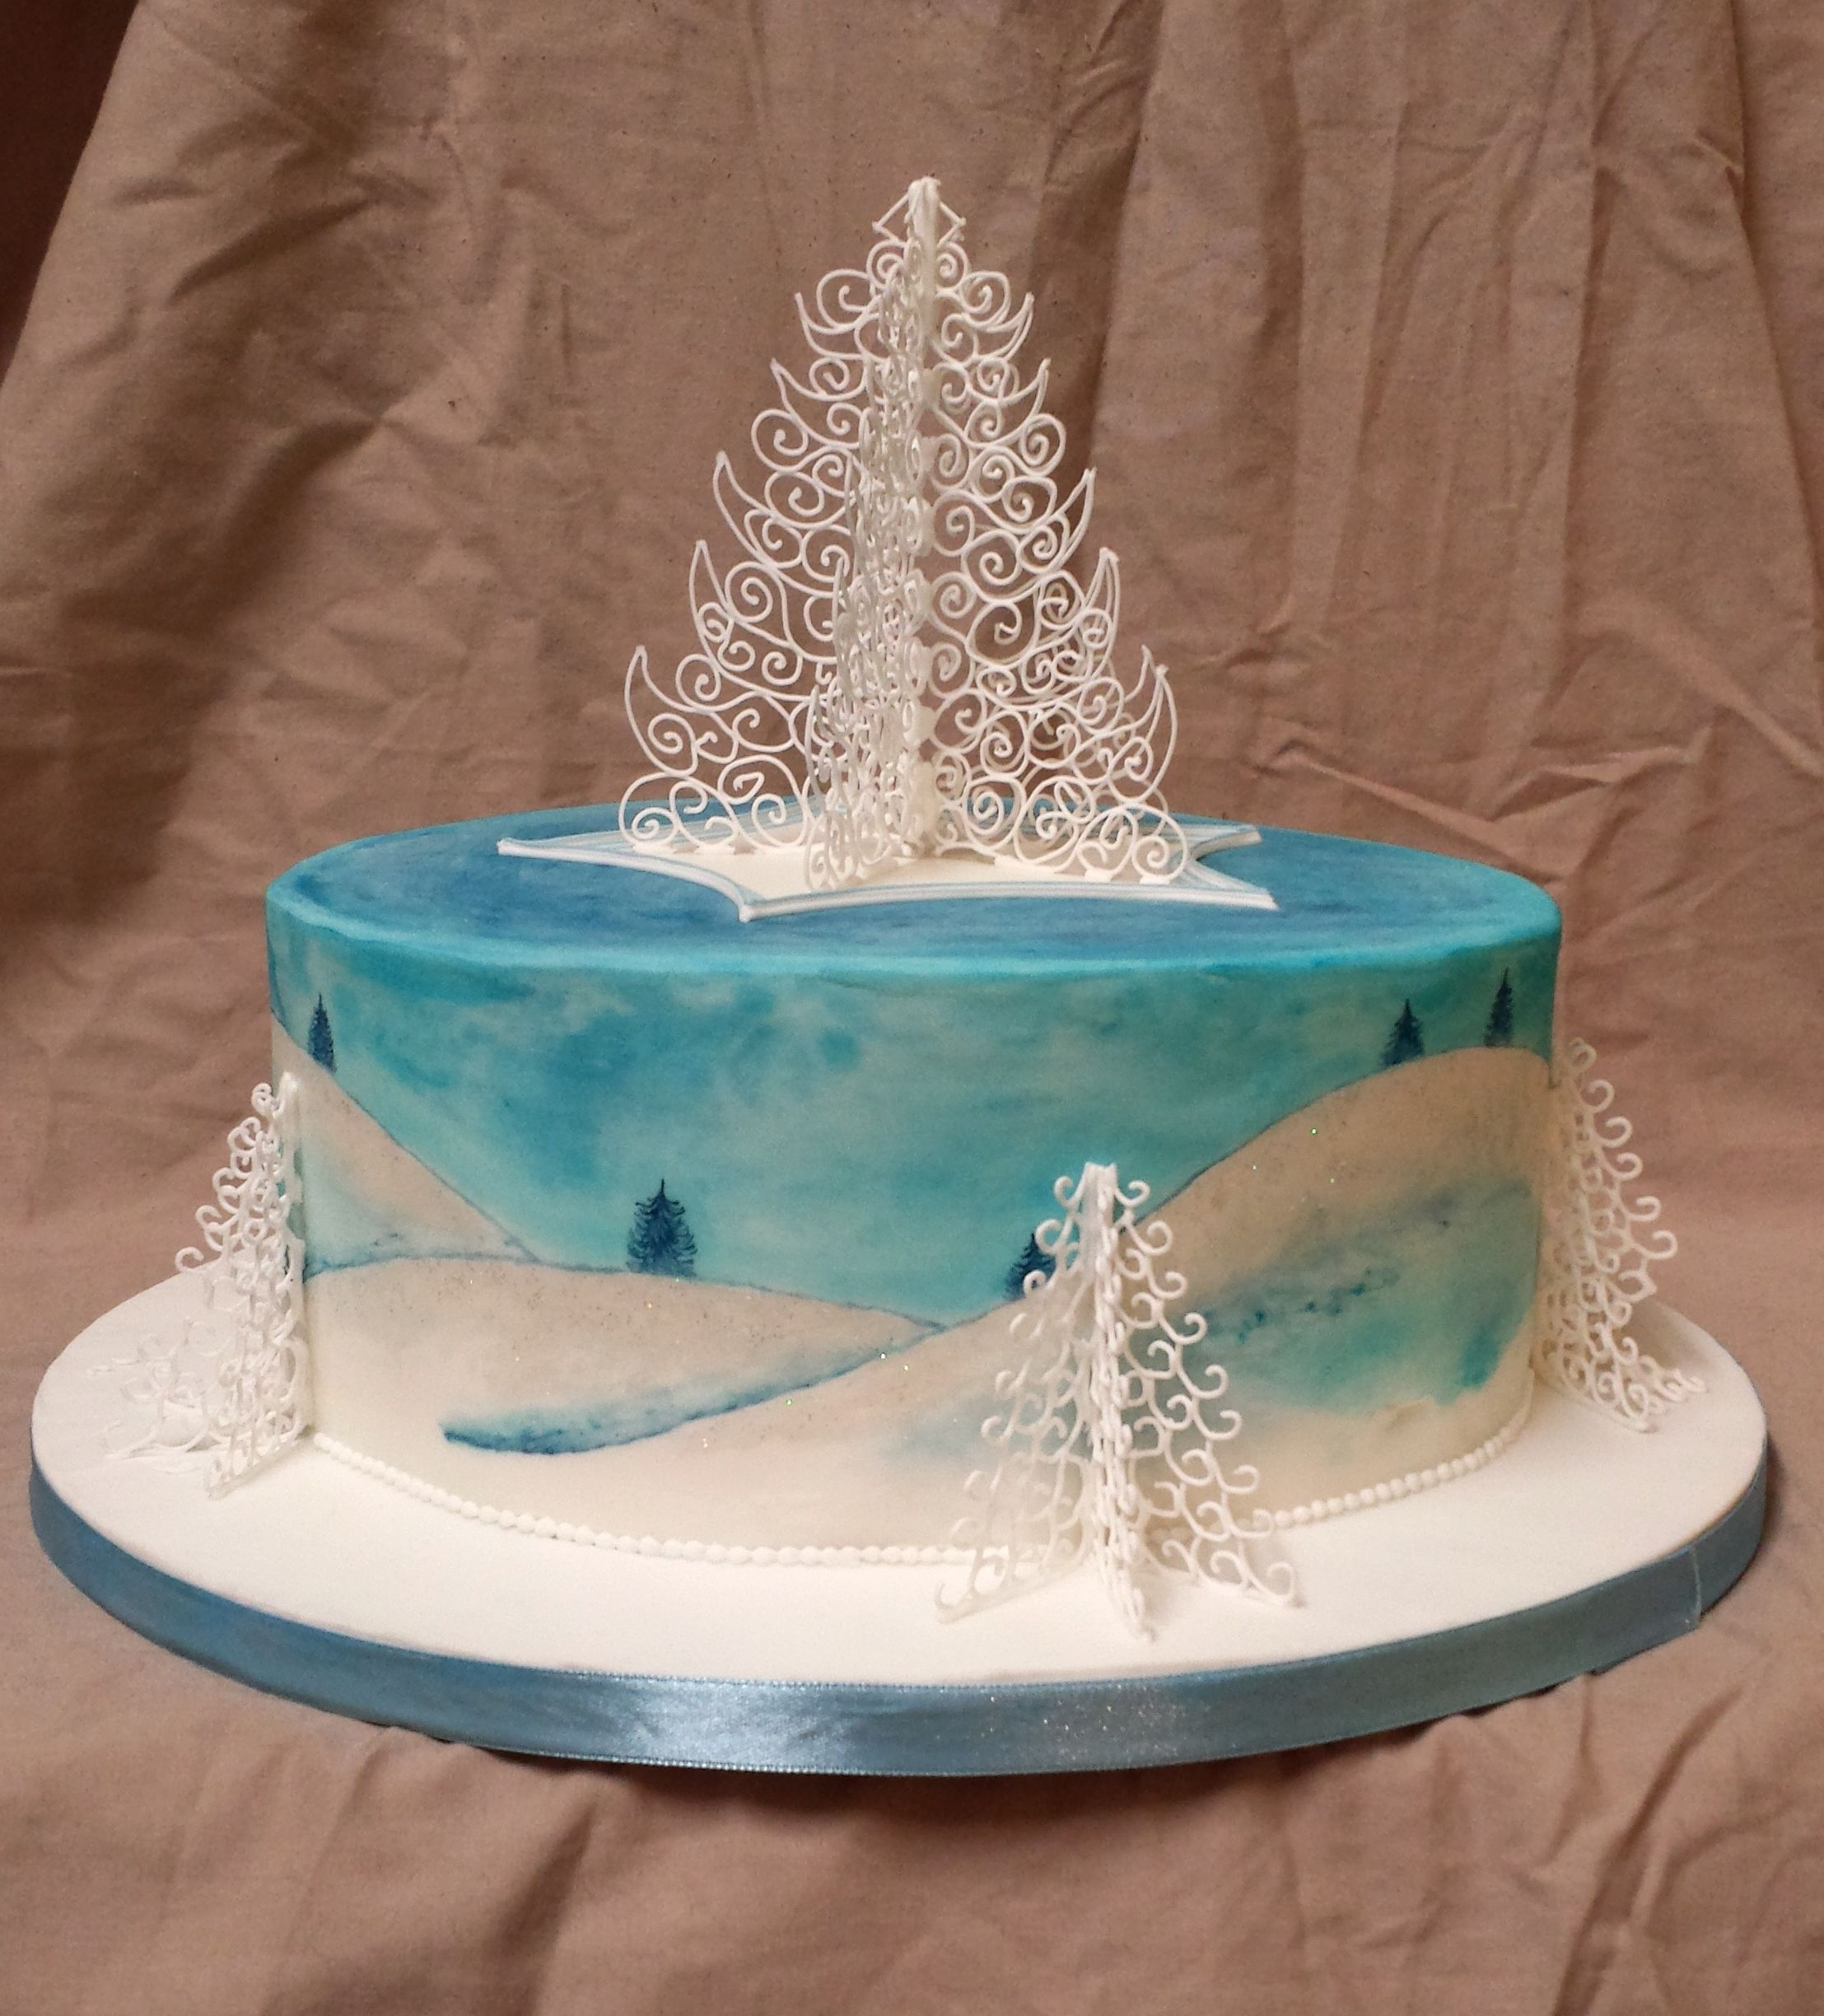 Christmas - Traditional Royal Icing Christmas cake, hand painted with dust colours (Sigh, Santa didn't bri… | Christmas cake, Royal icing cakes, Christmas tree cake